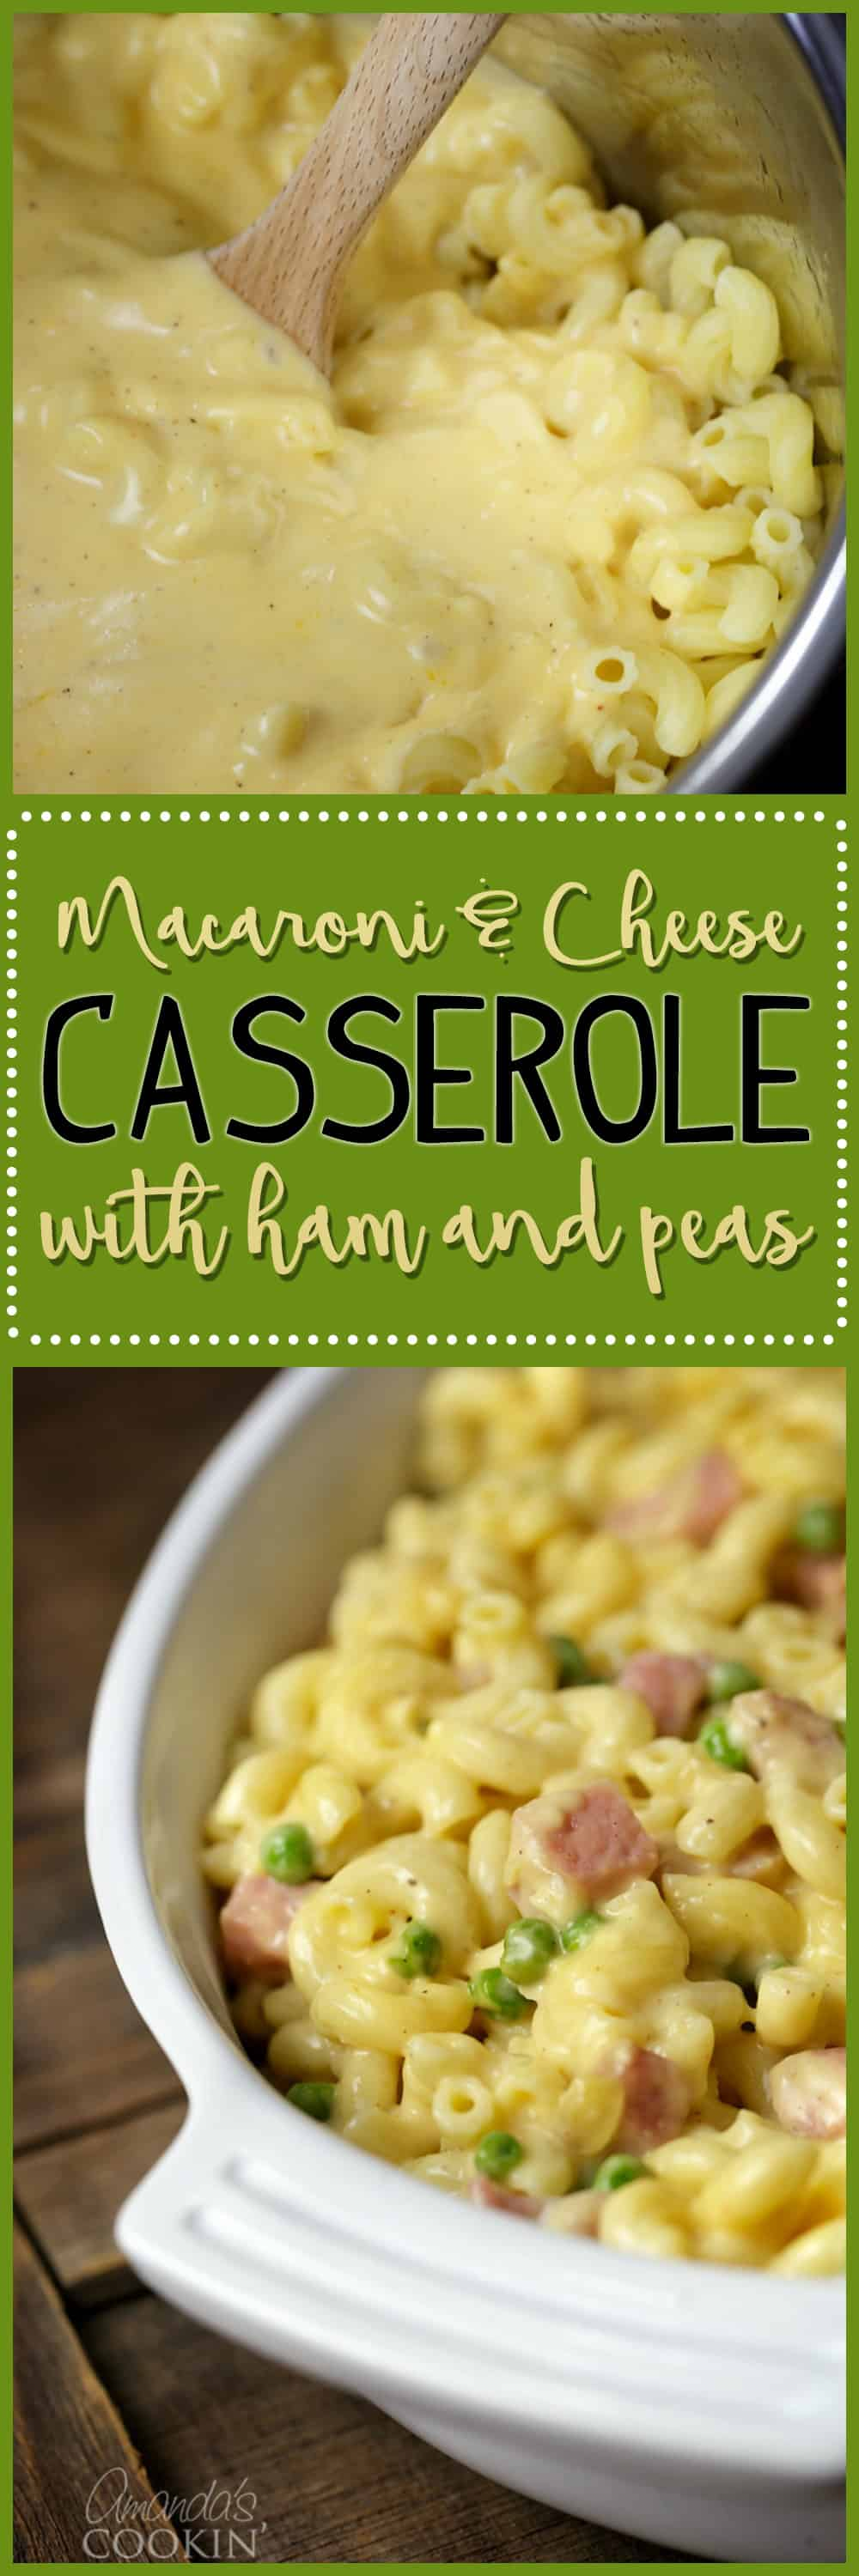 Everyone's favorite comfort food, Macaroni and Cheese Casserole. Ham and peas compliment this classic family favorite casserole.